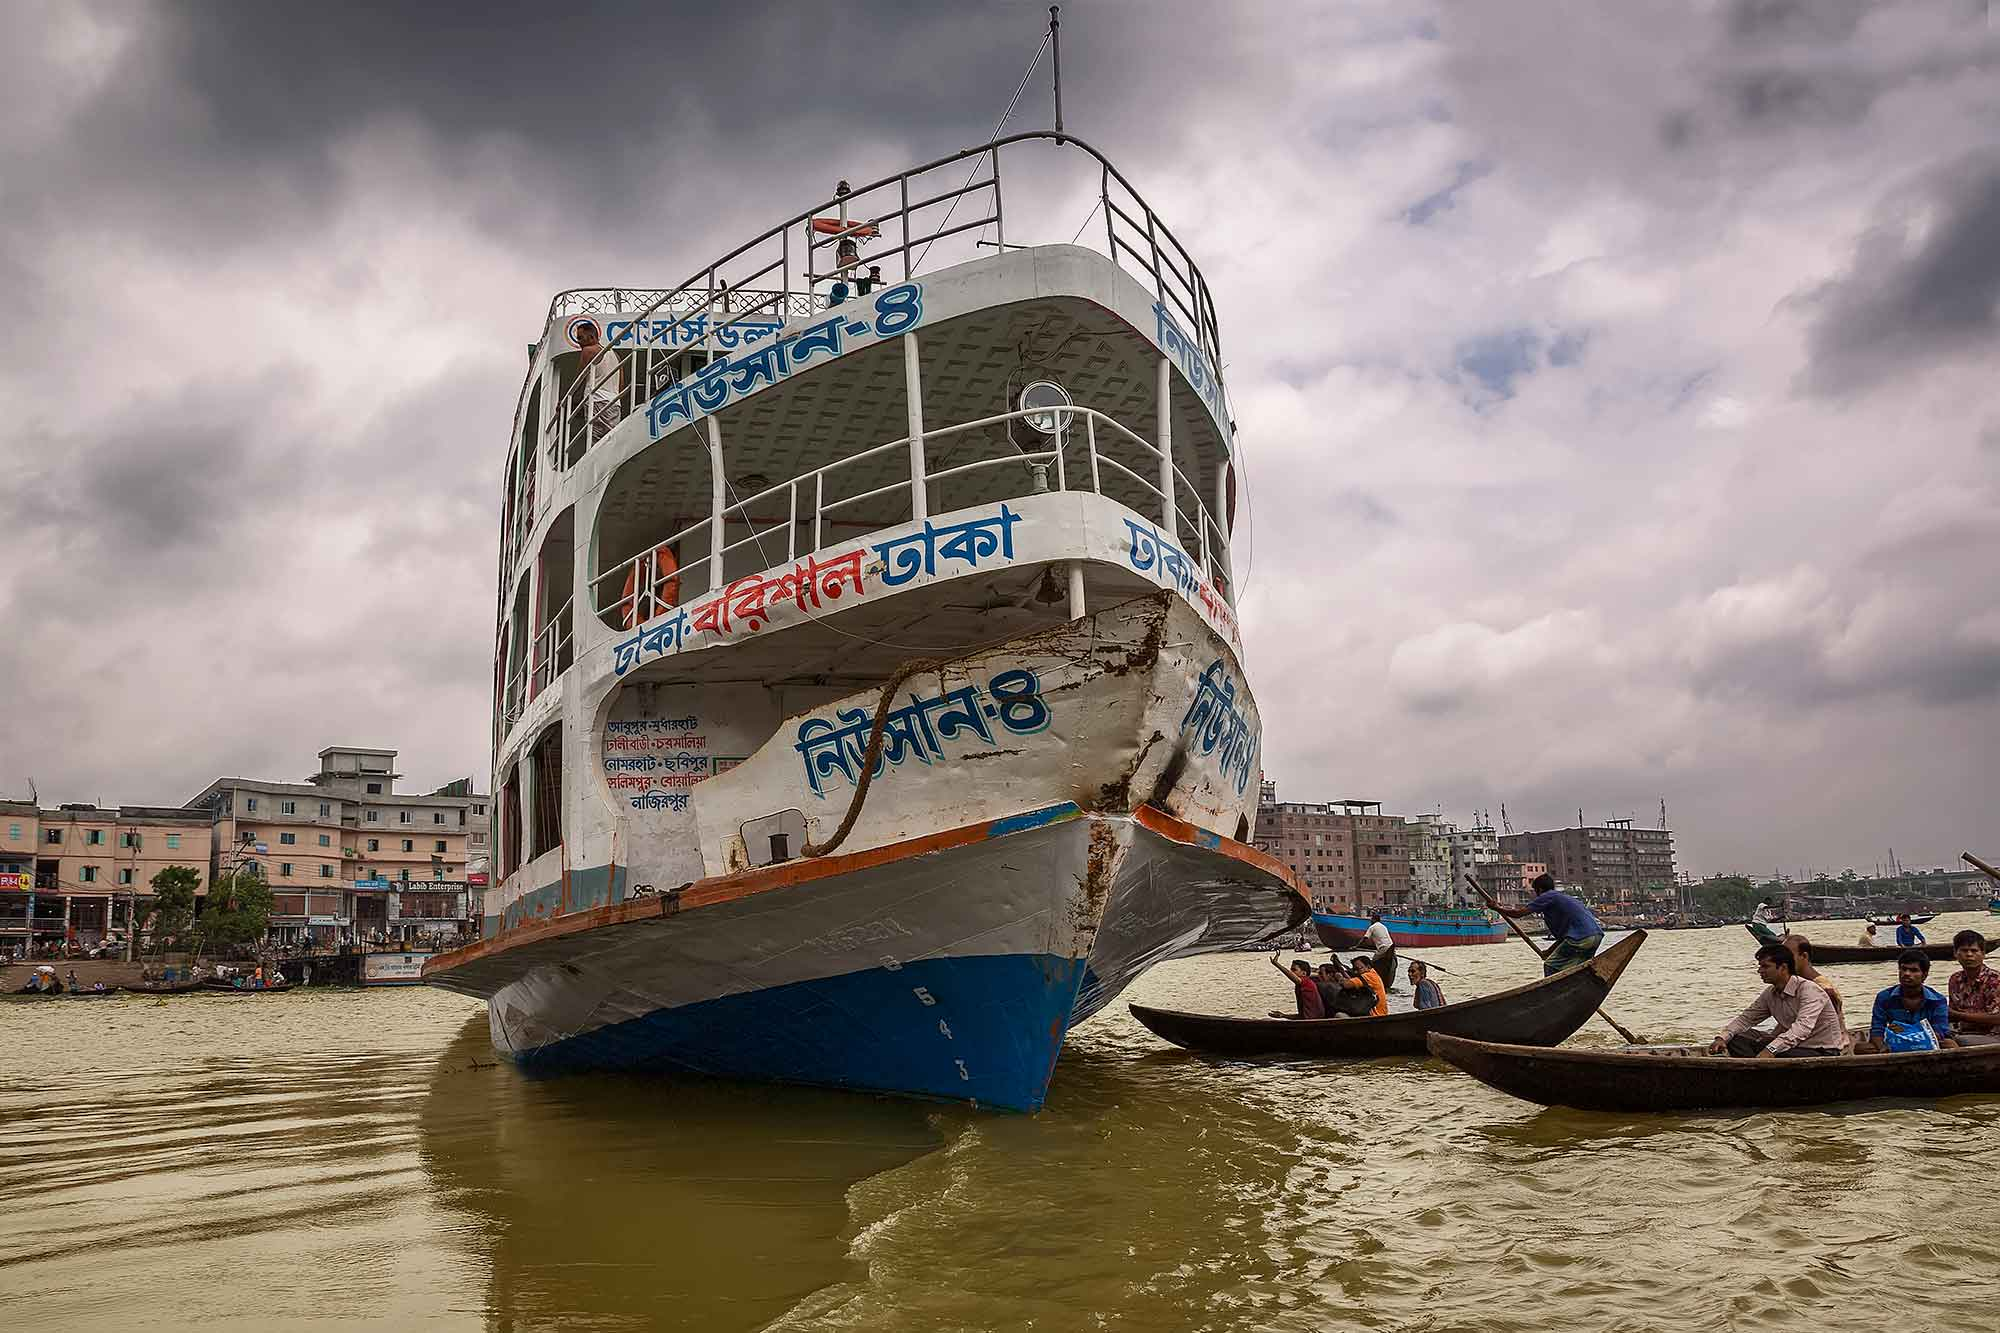 A launch ready to depart from Sadarghat port in Dhaka, Bangladesh. © Ulli Maier & Nisa Maier